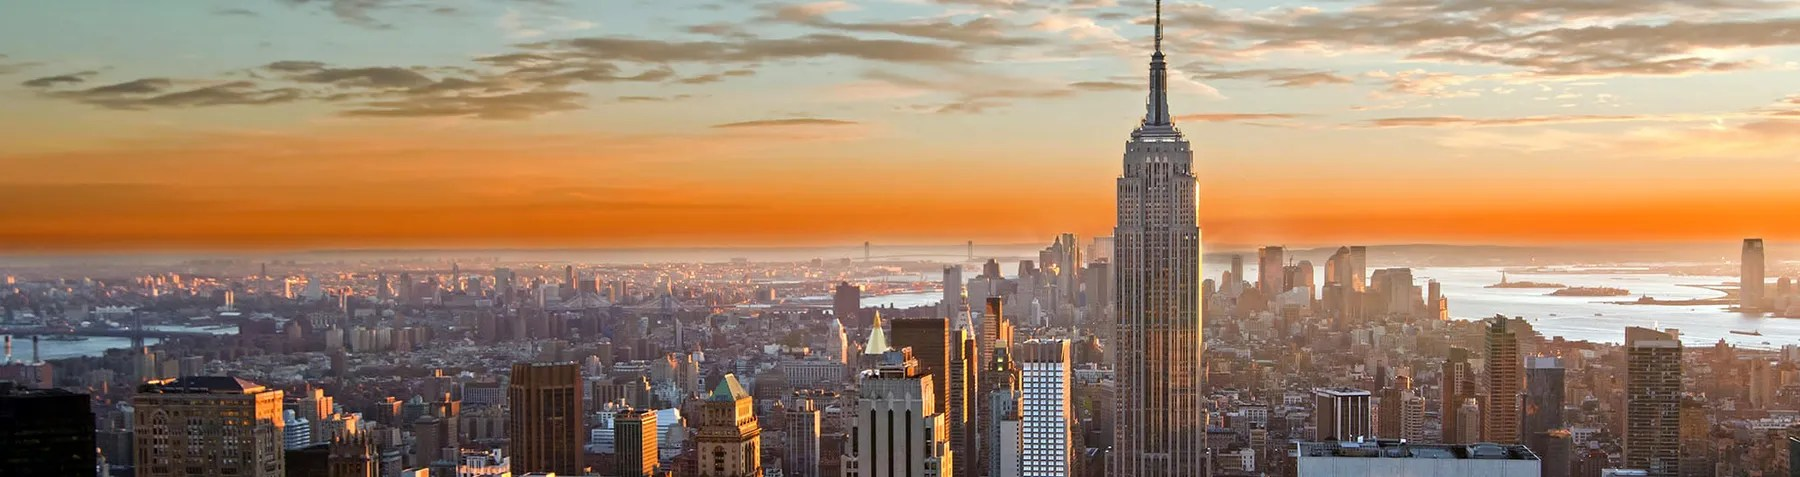 Hotels In New York Find New York Hotel Deals With Skyscanner